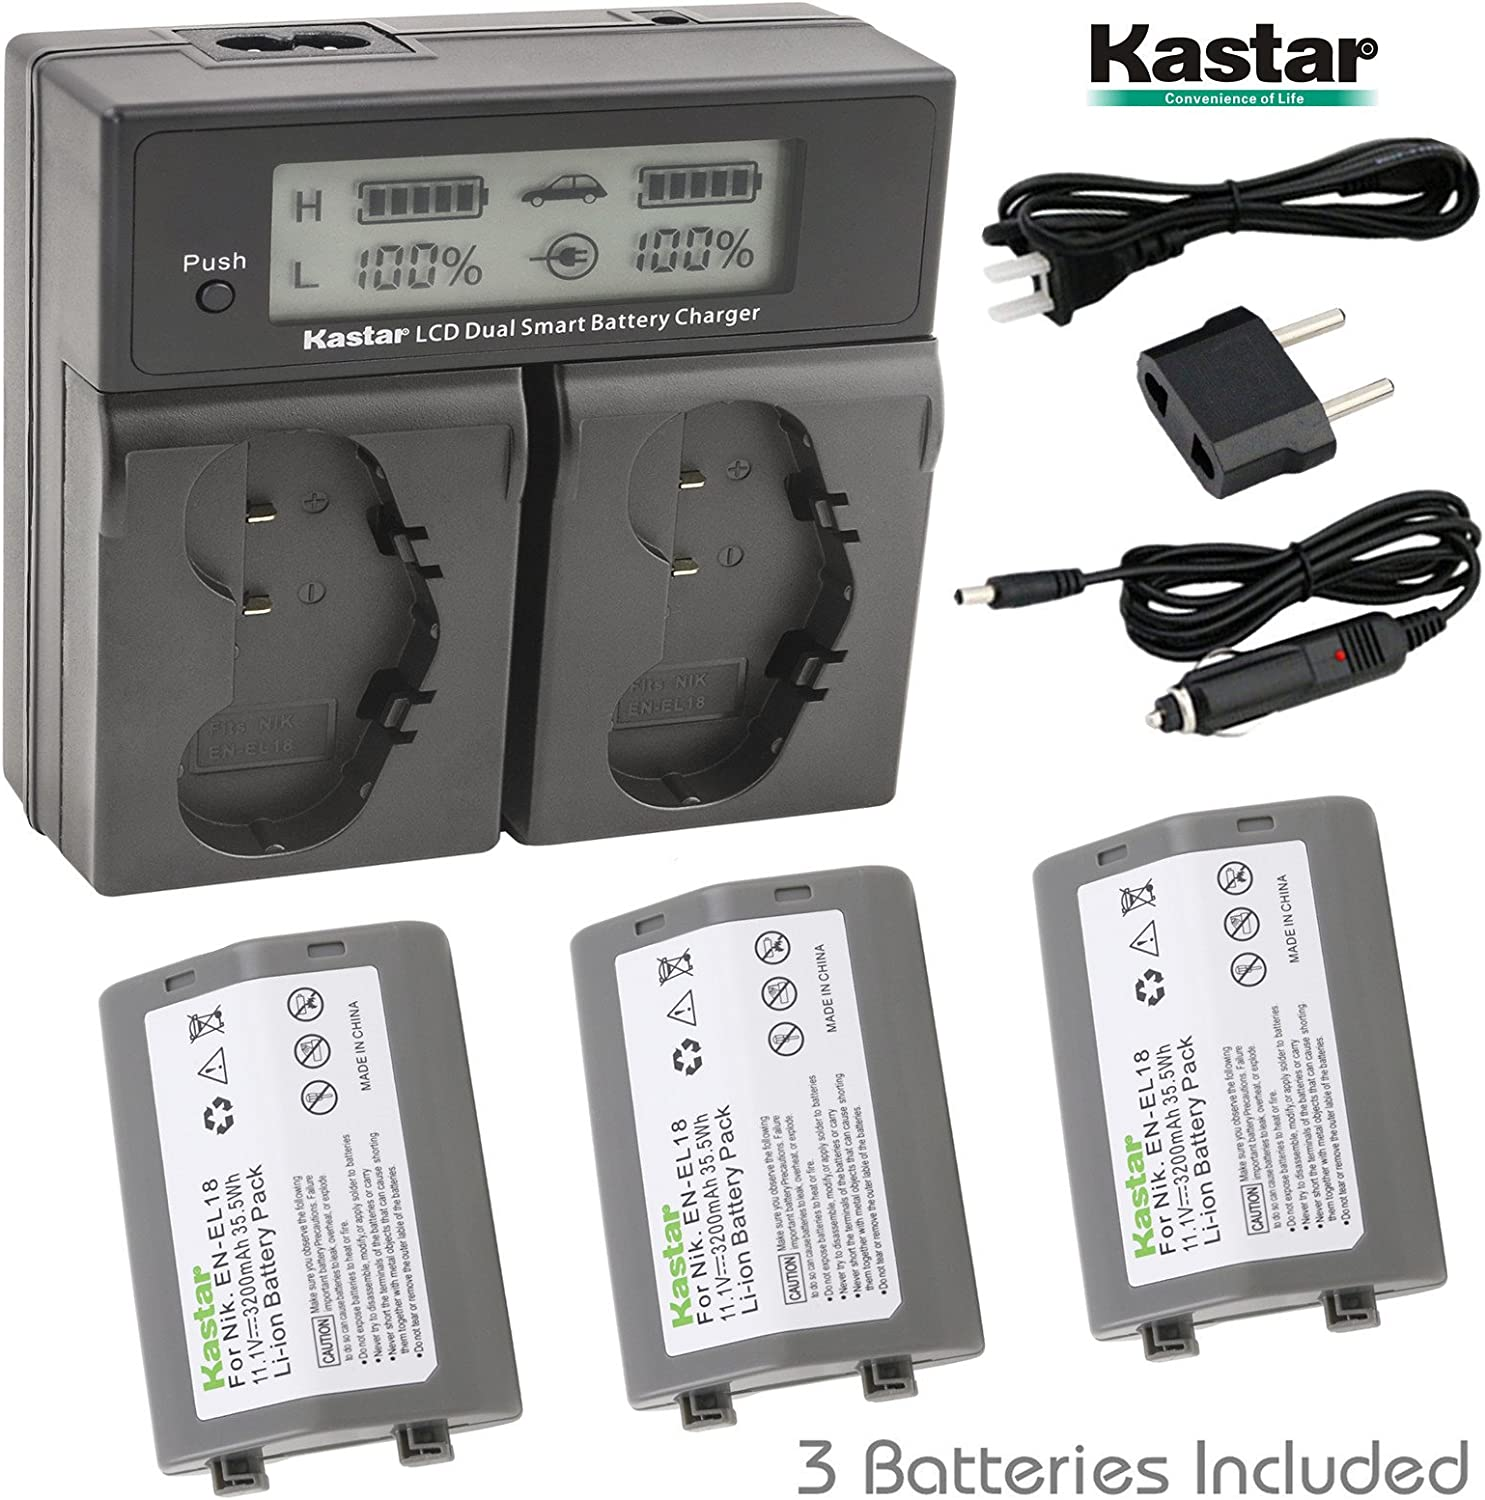 Battery 3X for Nikon EN-EL18 D800E Battery Grip Nikon MB-D12 MH26 /& Nikon D4 EN-EL18b D5 EN-EL18c EN-EL18a D4S Kastar LCD Dual Smart Fast Charger D800 D6 Digital SLR Camera MH-26a MH-26